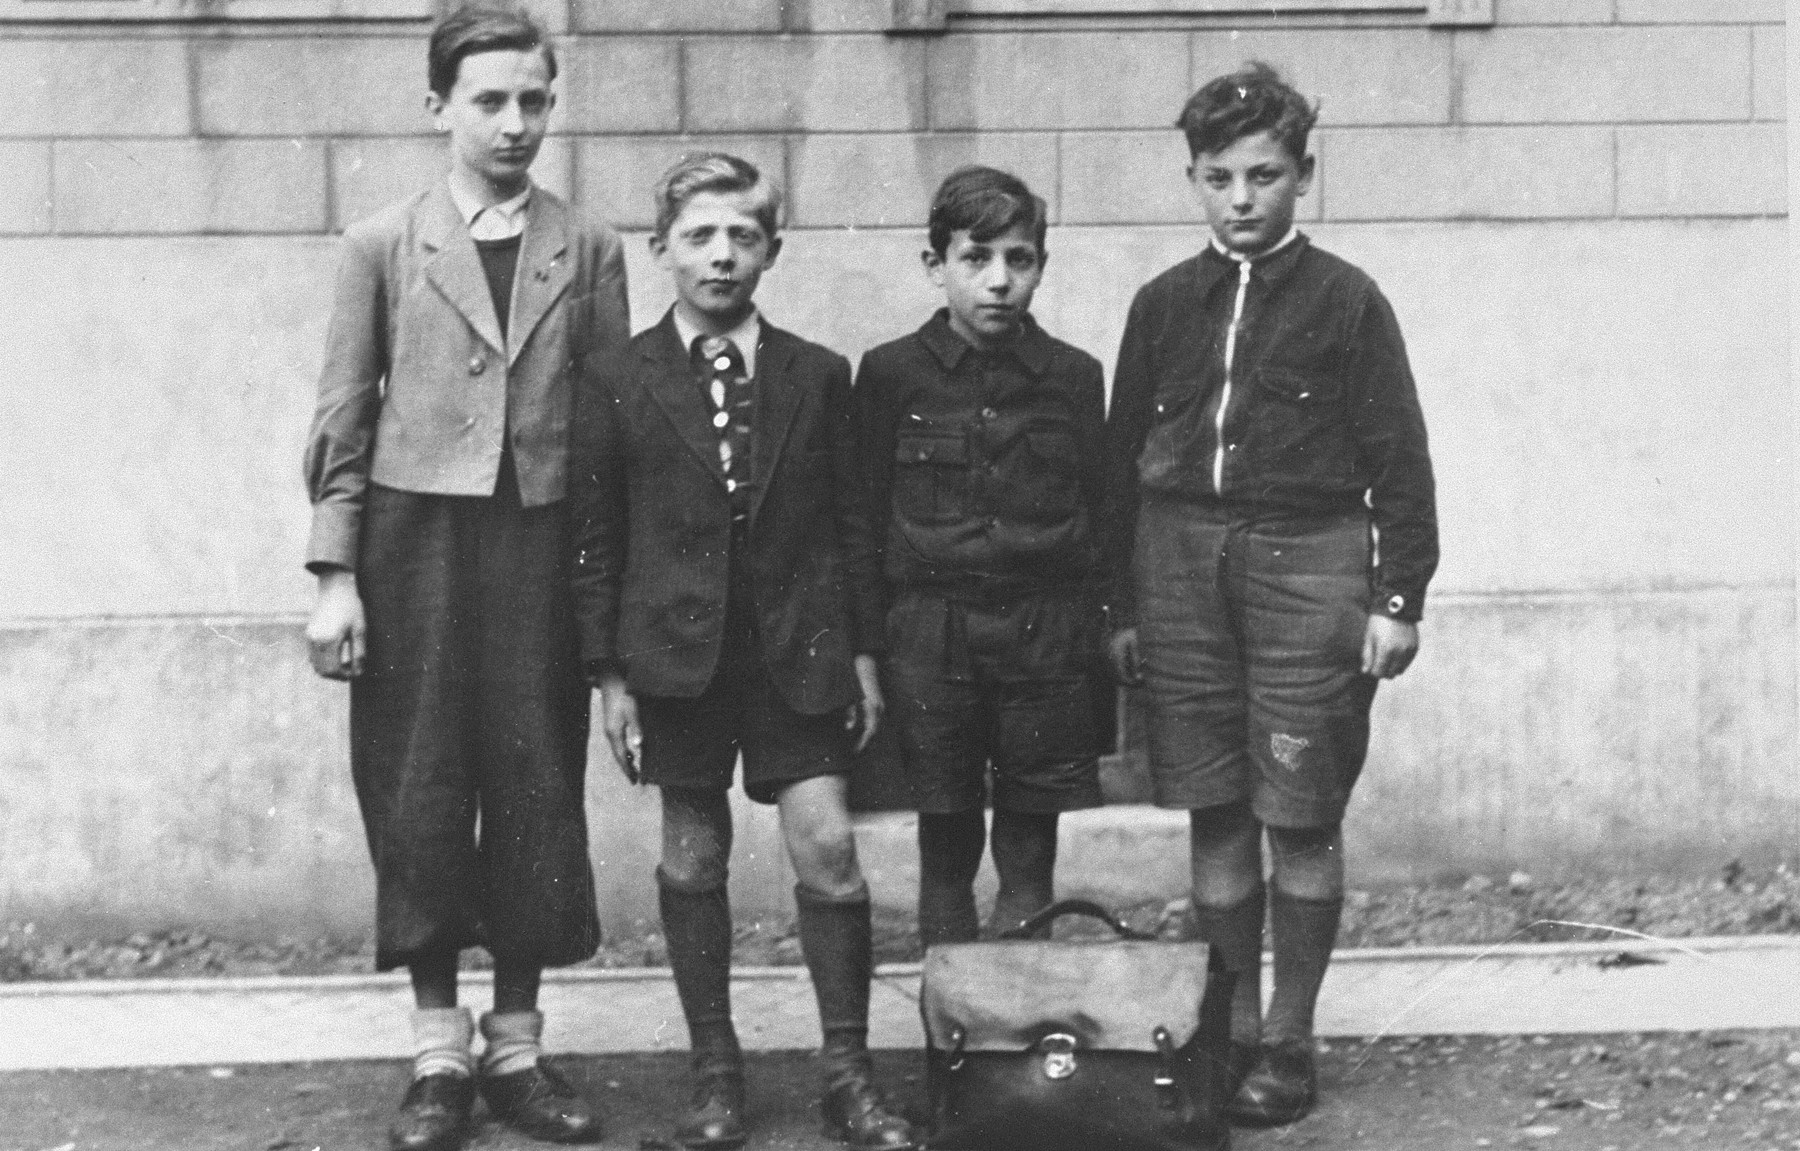 Group portrait of four Jewish boys who are being sheltered by Father Bruno.    Pictured from left to right are: Bernard Friedman, Leon Wygodski, Leon Chorvansky, David Rosenberg.